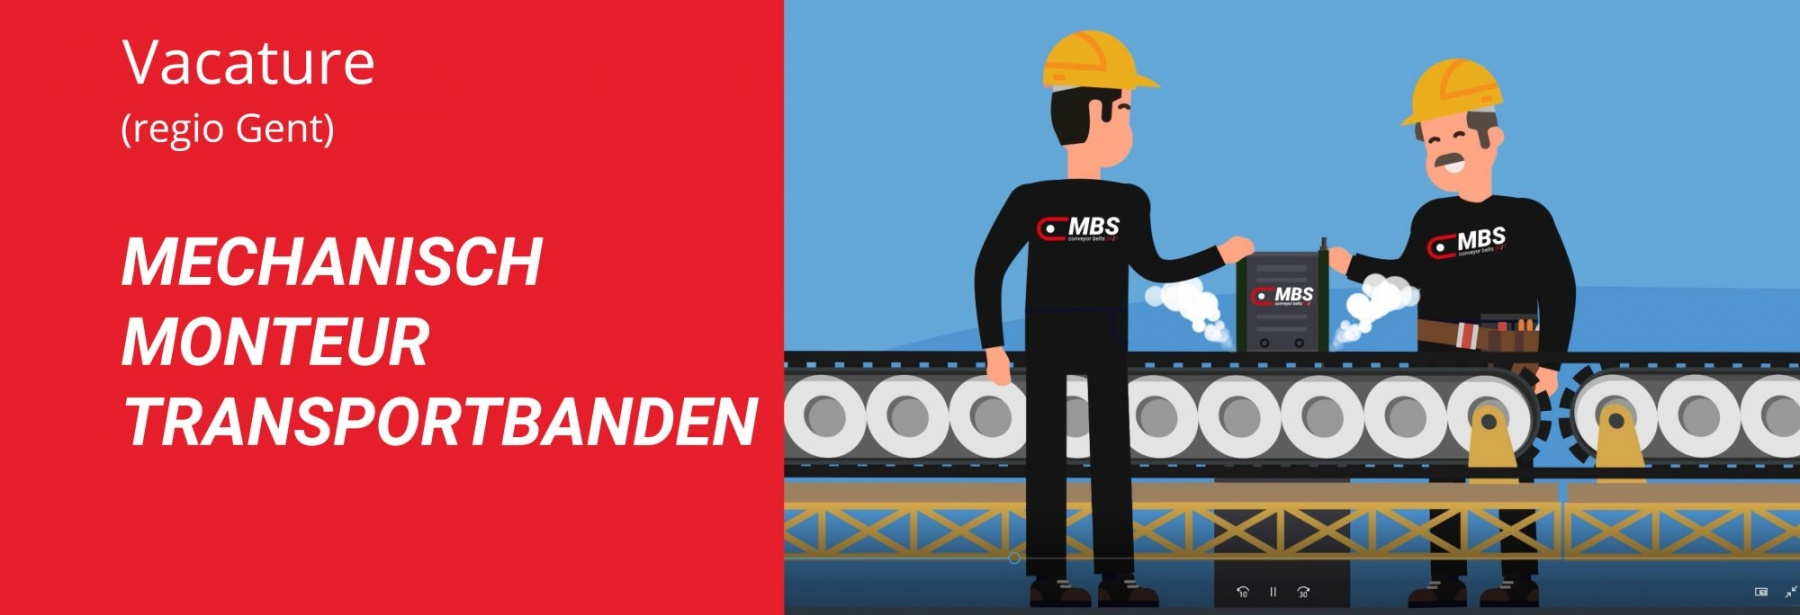 Mechanisch monteur transportbanden Gent MBS Group.